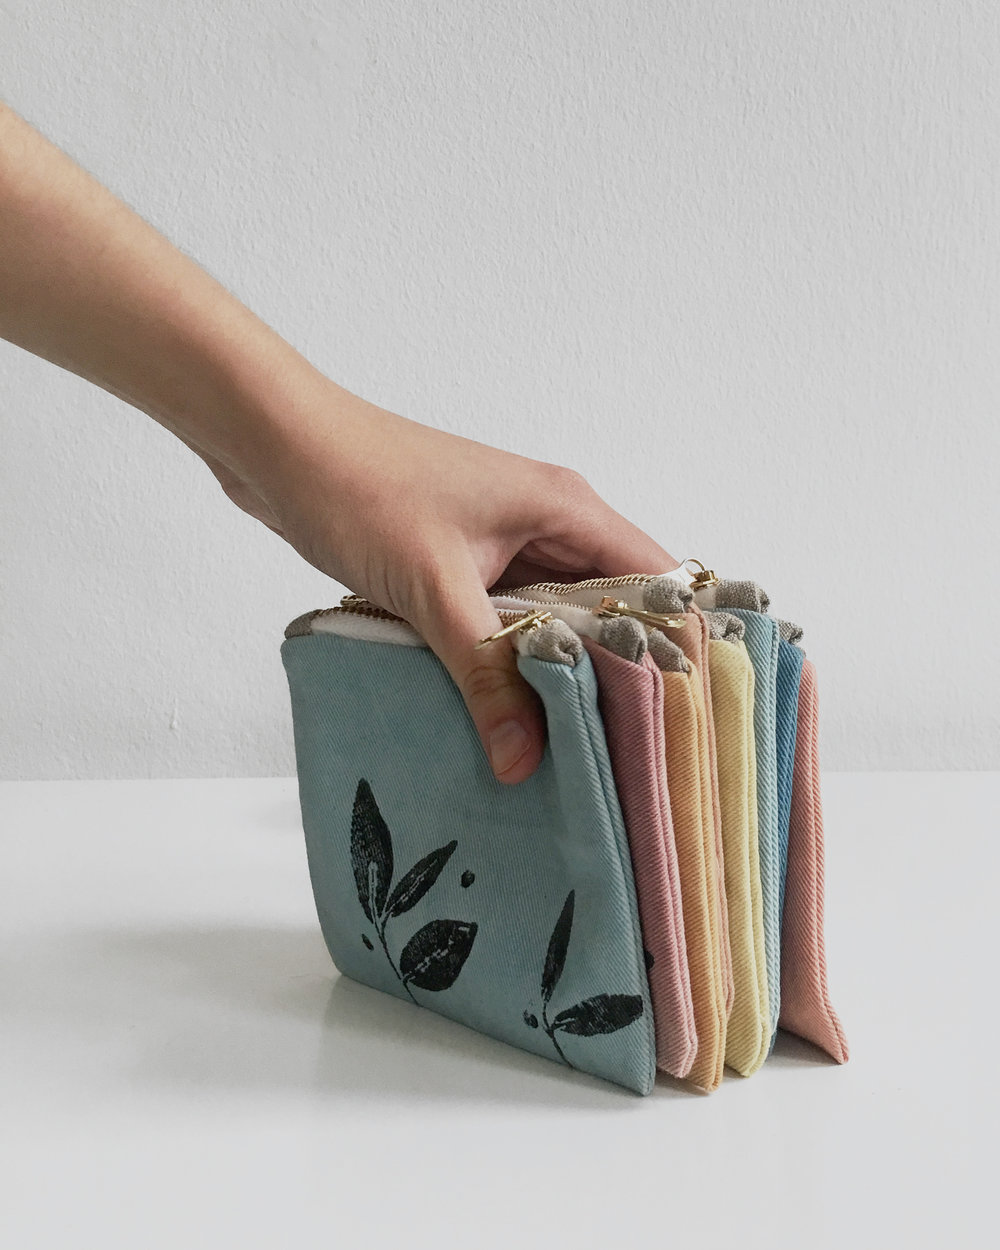 Shop update - eye pillows and plant dyed zipper pouches